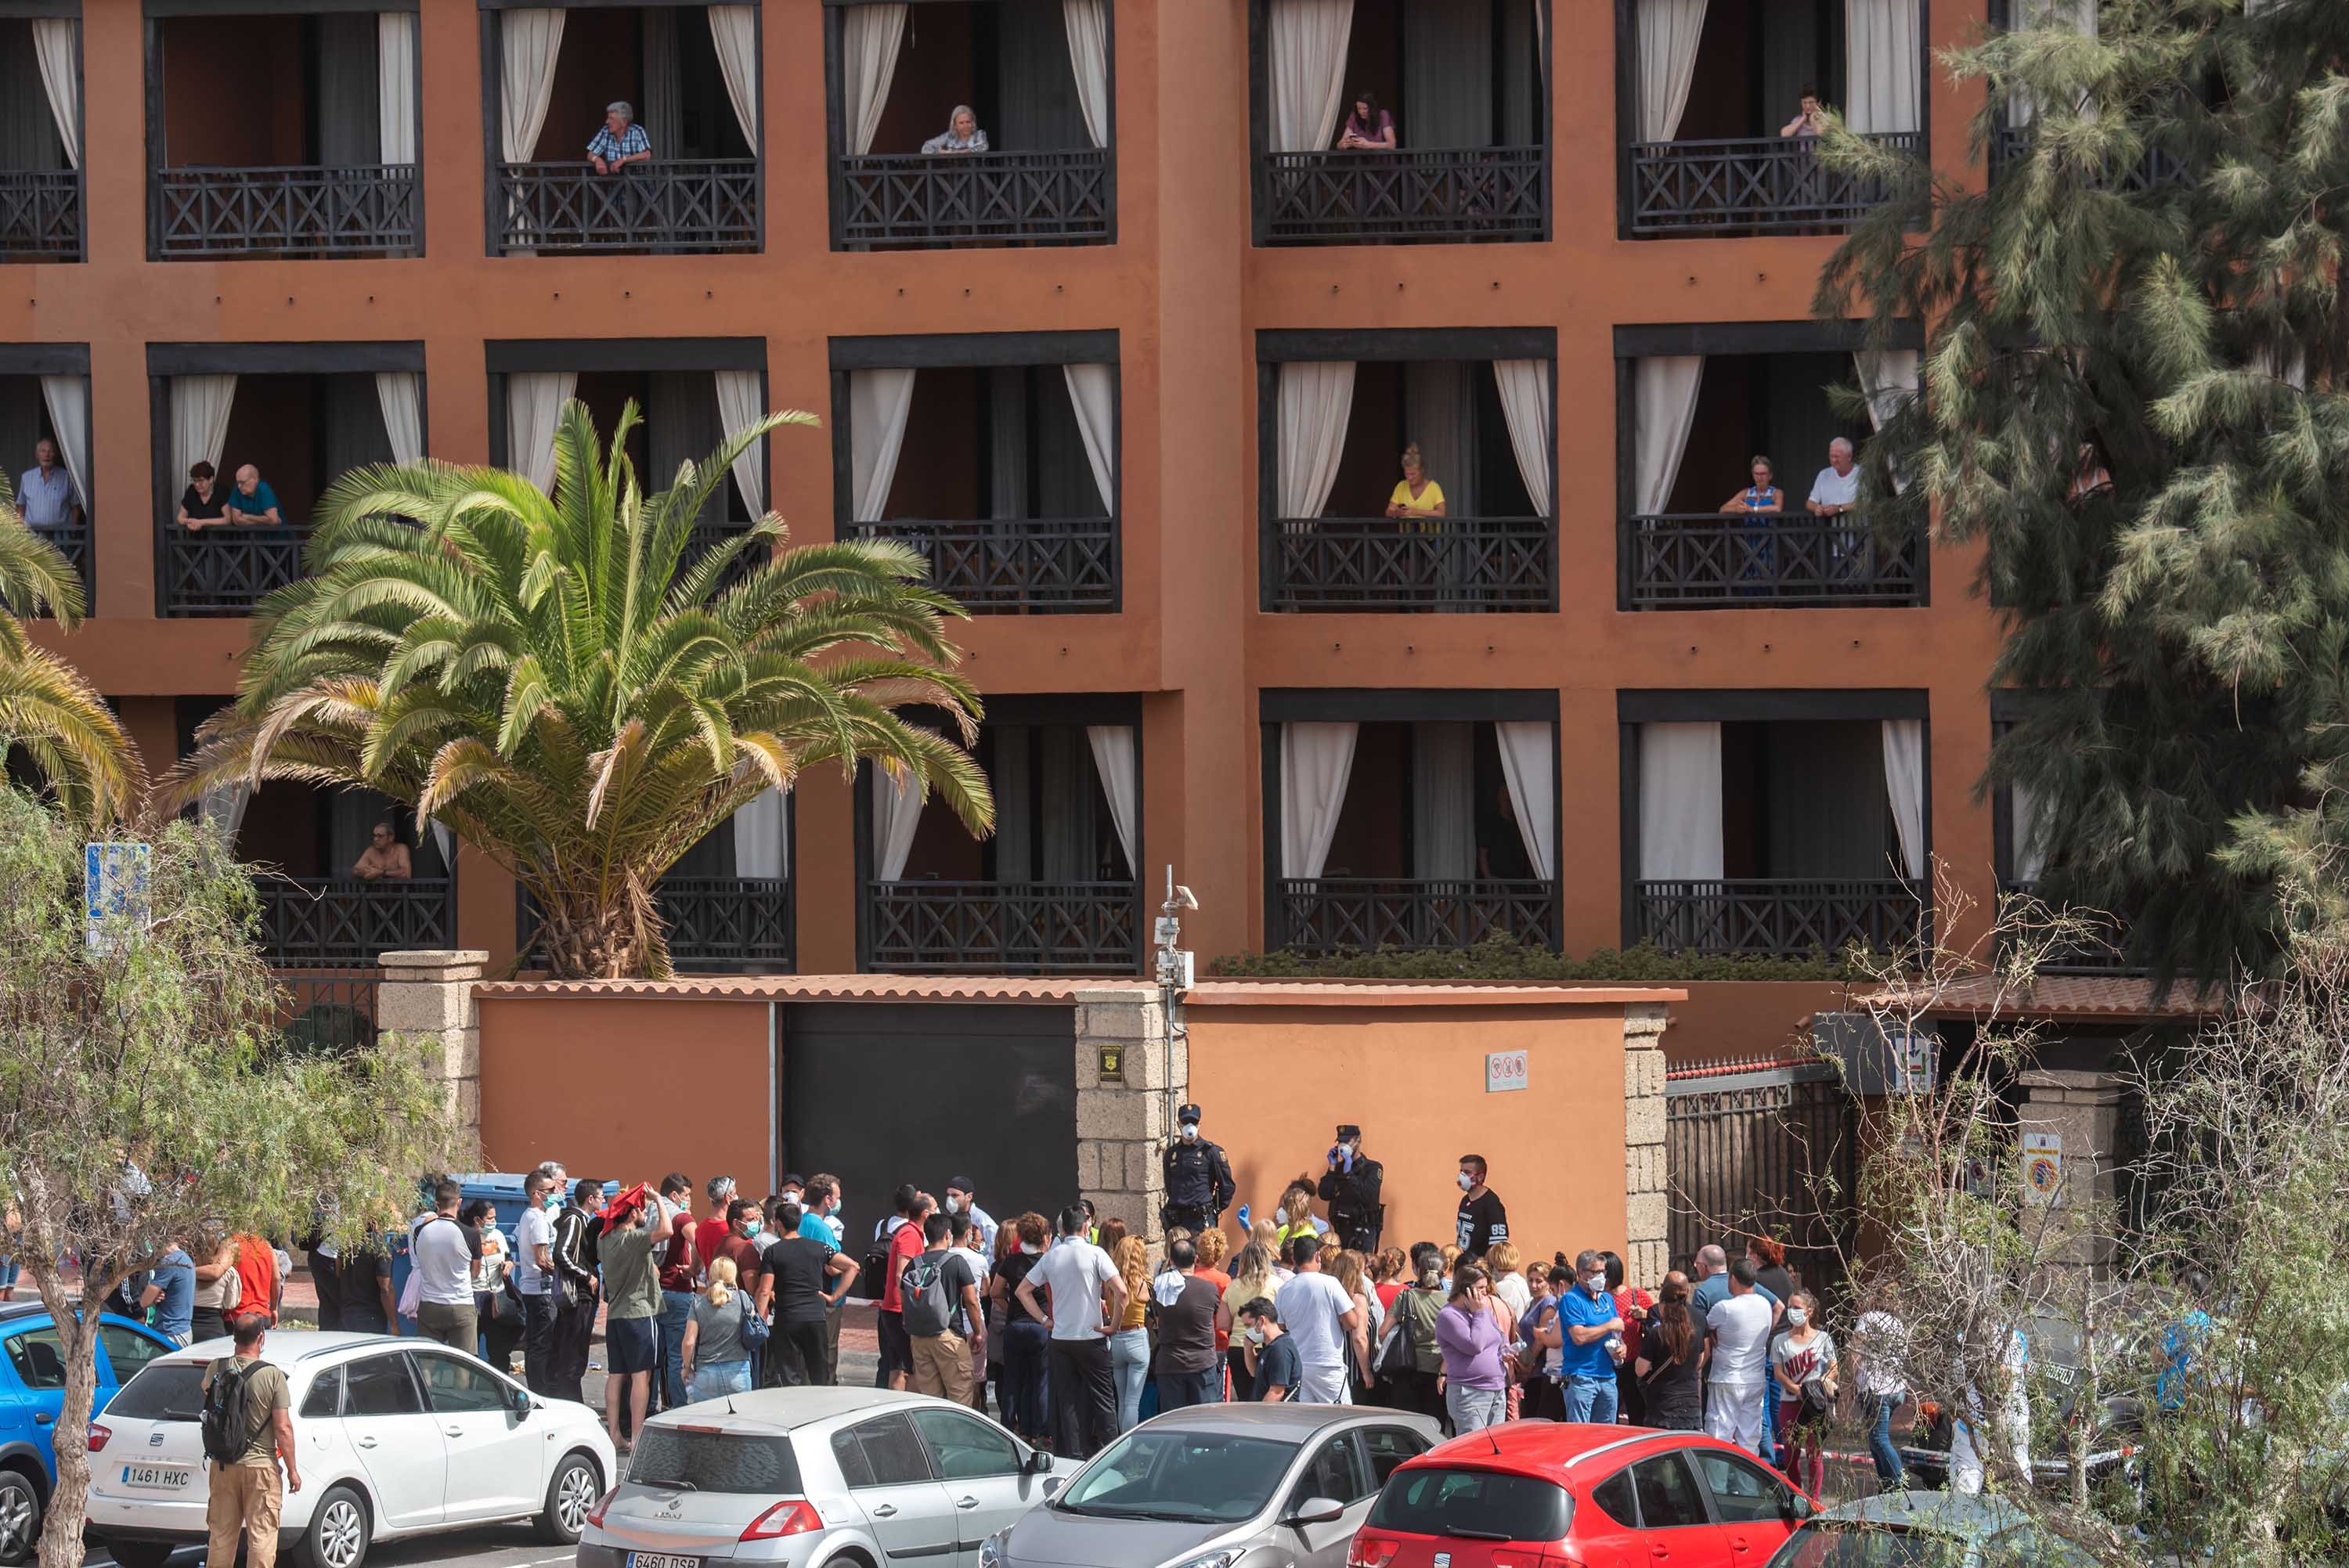 A psychologist talks to a group of workers on Tuesday outside the H10 Costa Adeje Palace Hotel in Tenerife, Spain, where hundreds of people were confined after an Italian tourist was hospitalised with a suspected case of coronavirus.